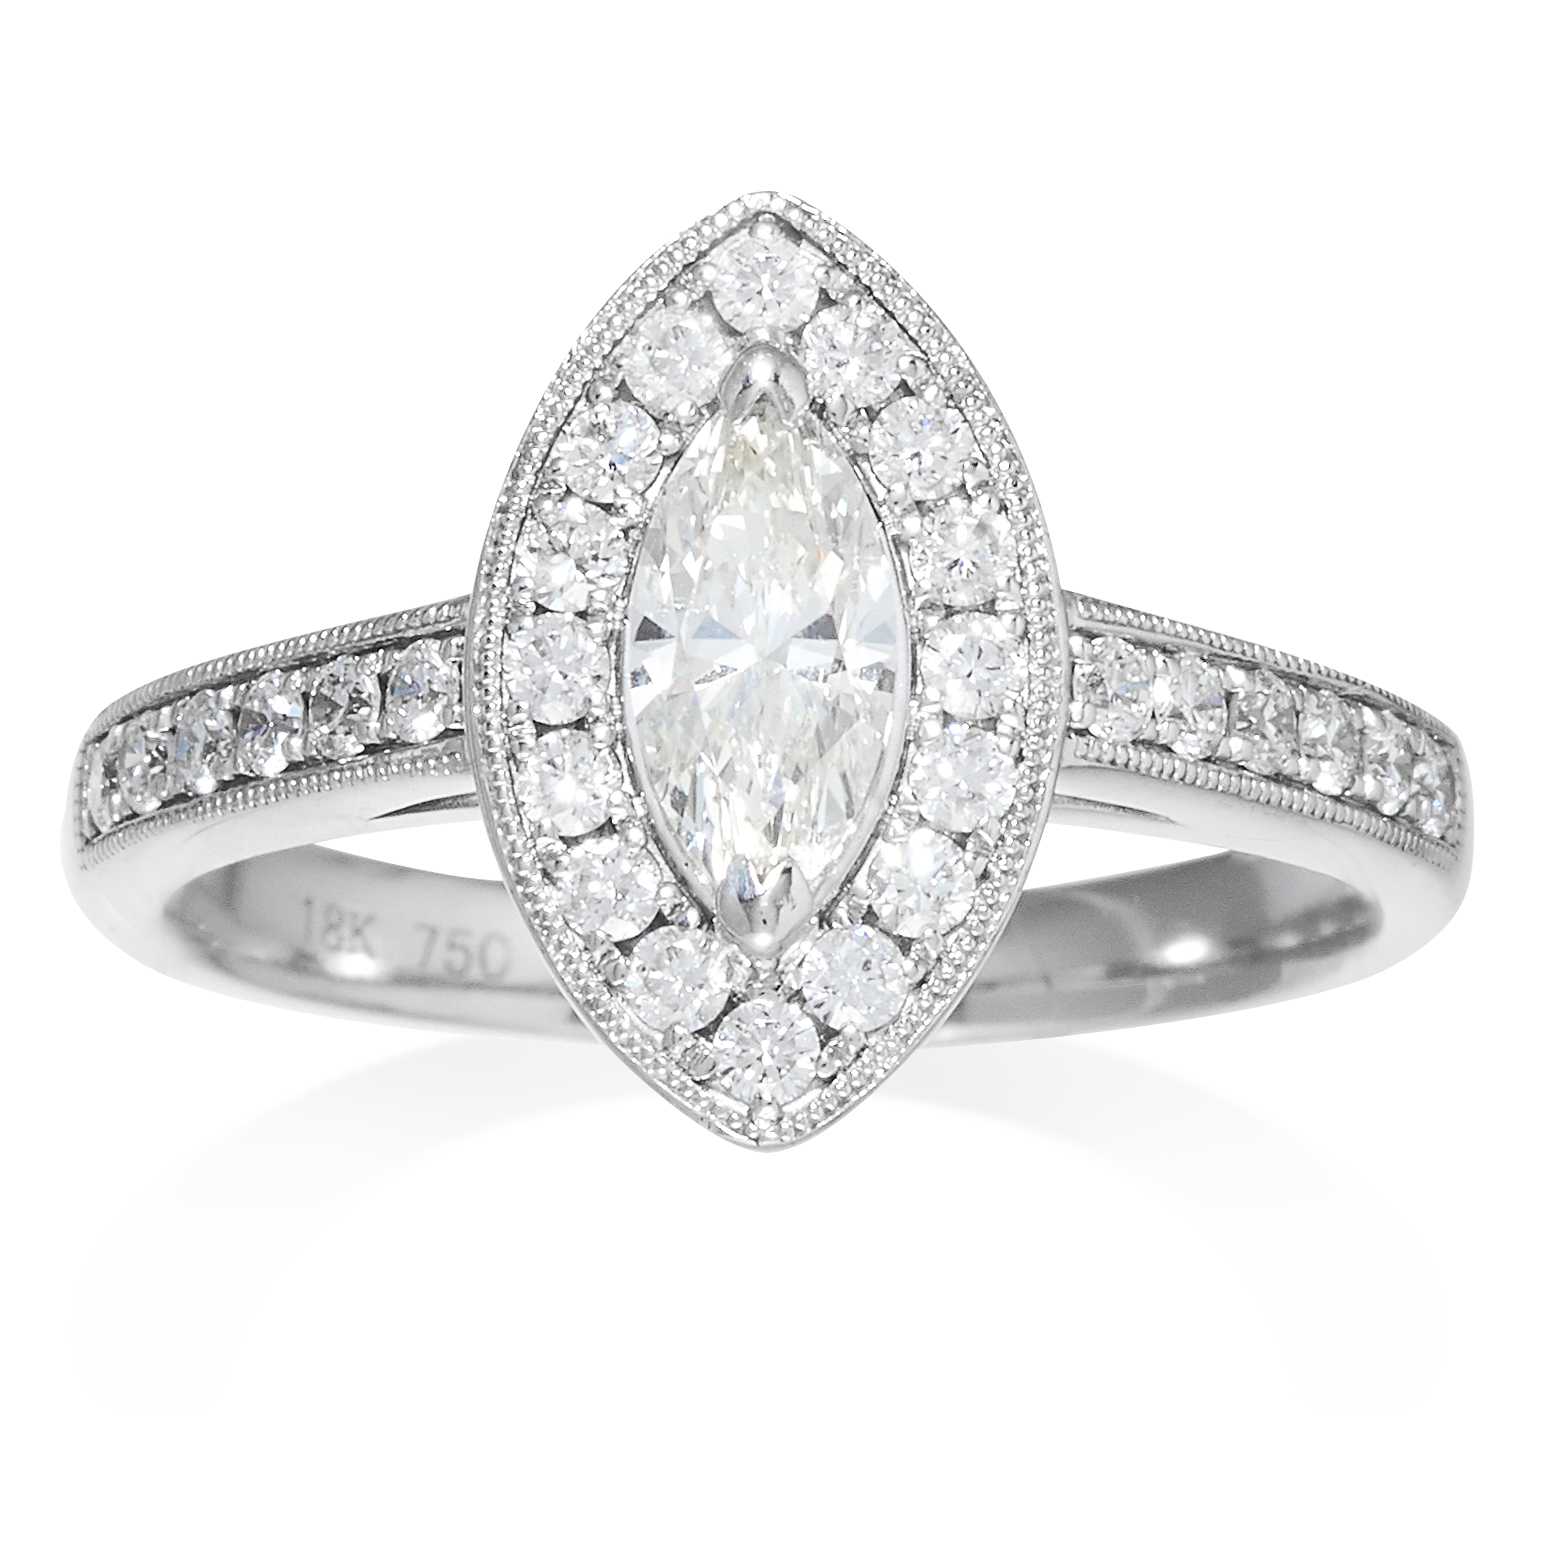 A DIAMOND DRESS RING in 18ct white gold, comprising of a central marquise cut diamond, framed in a